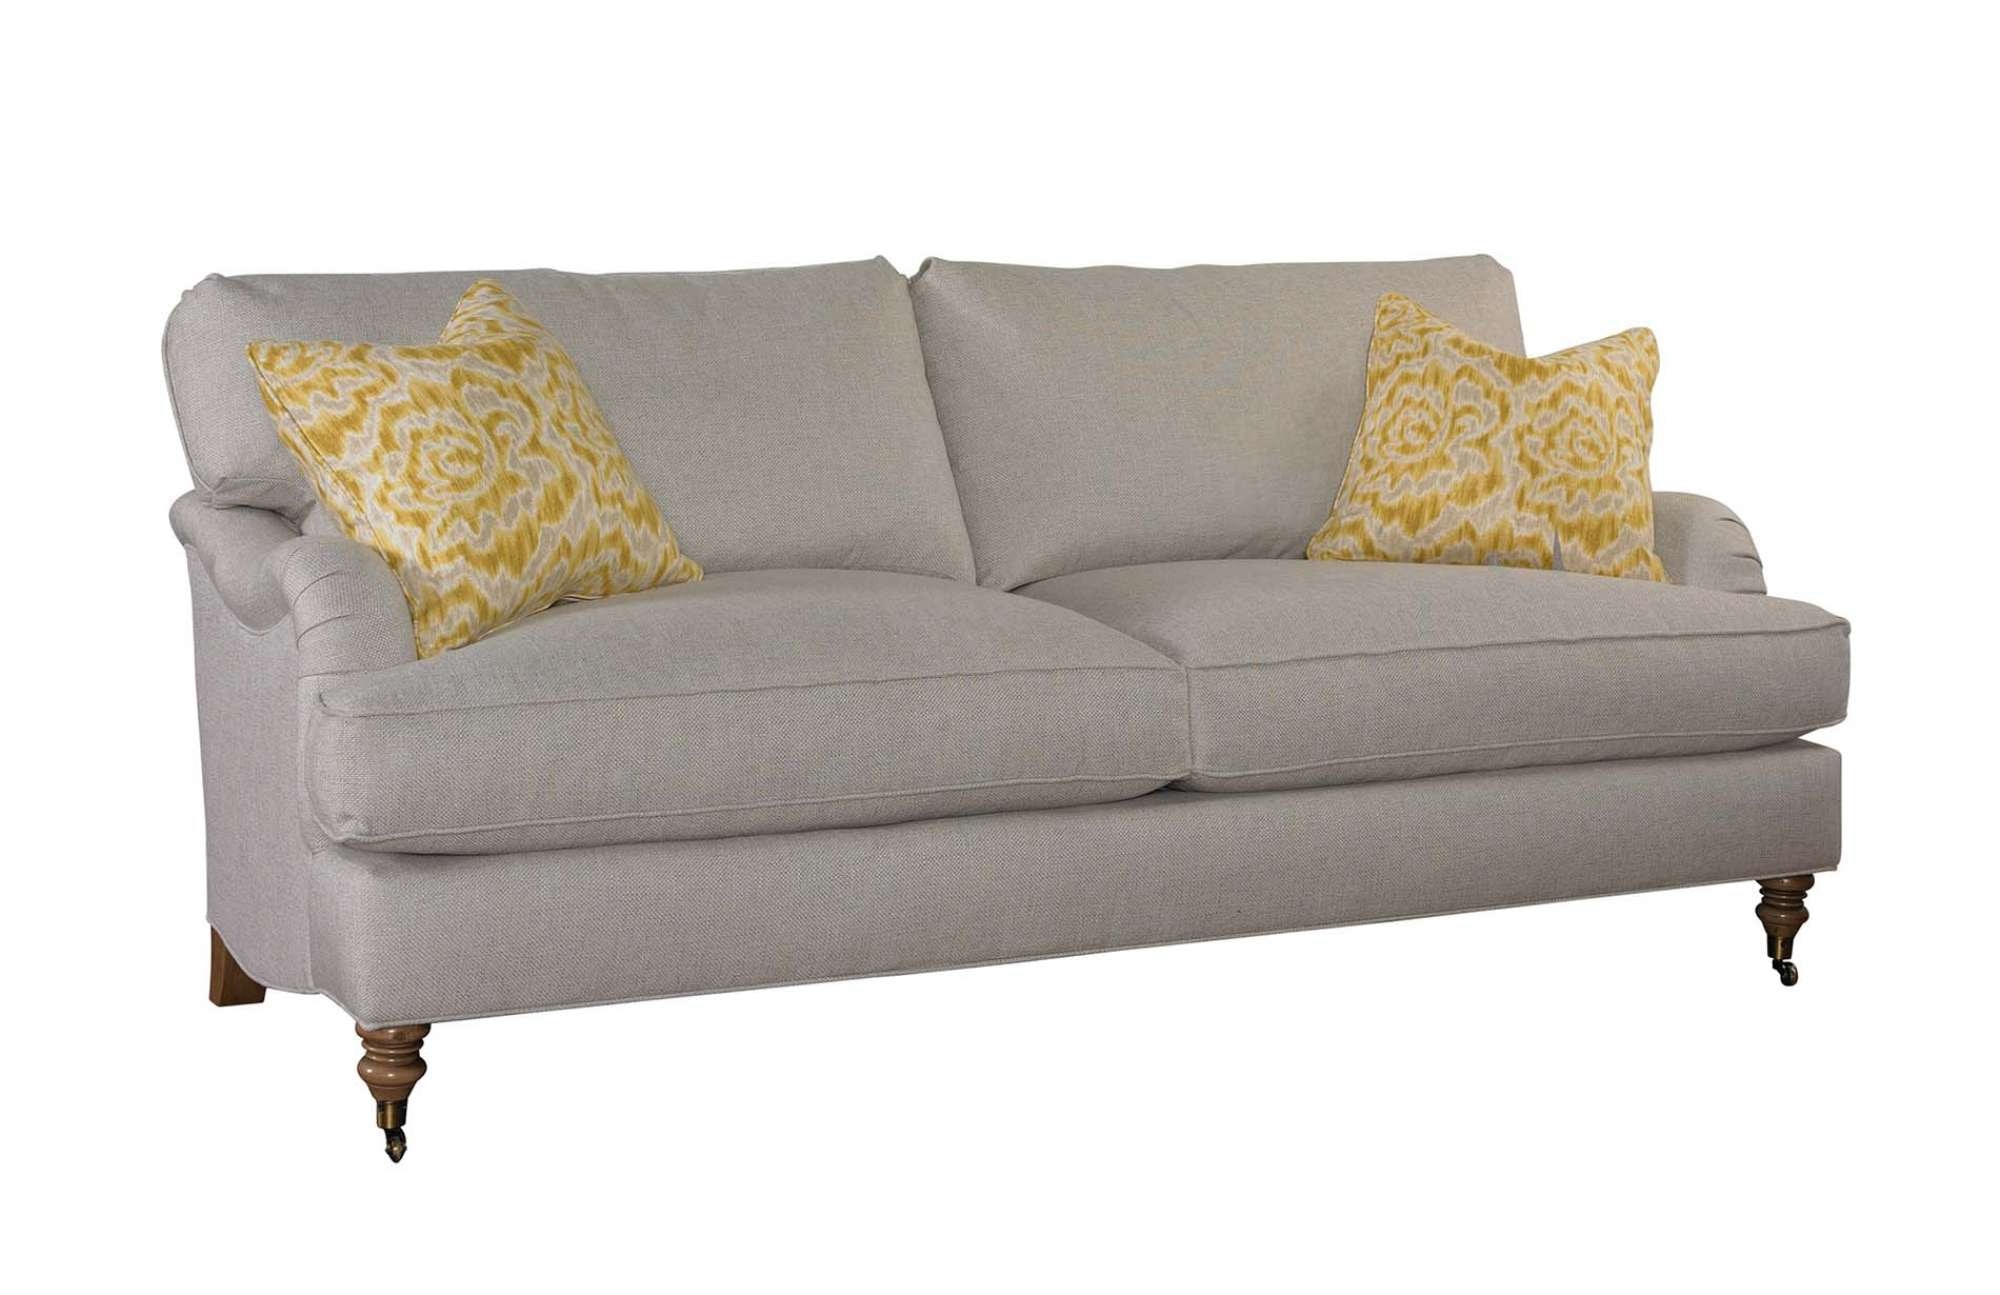 Perfect Robin Bruce Catalog Robin Bruce Sofa By Hickory Park Furniture Galleries  Brooke Sofa 2